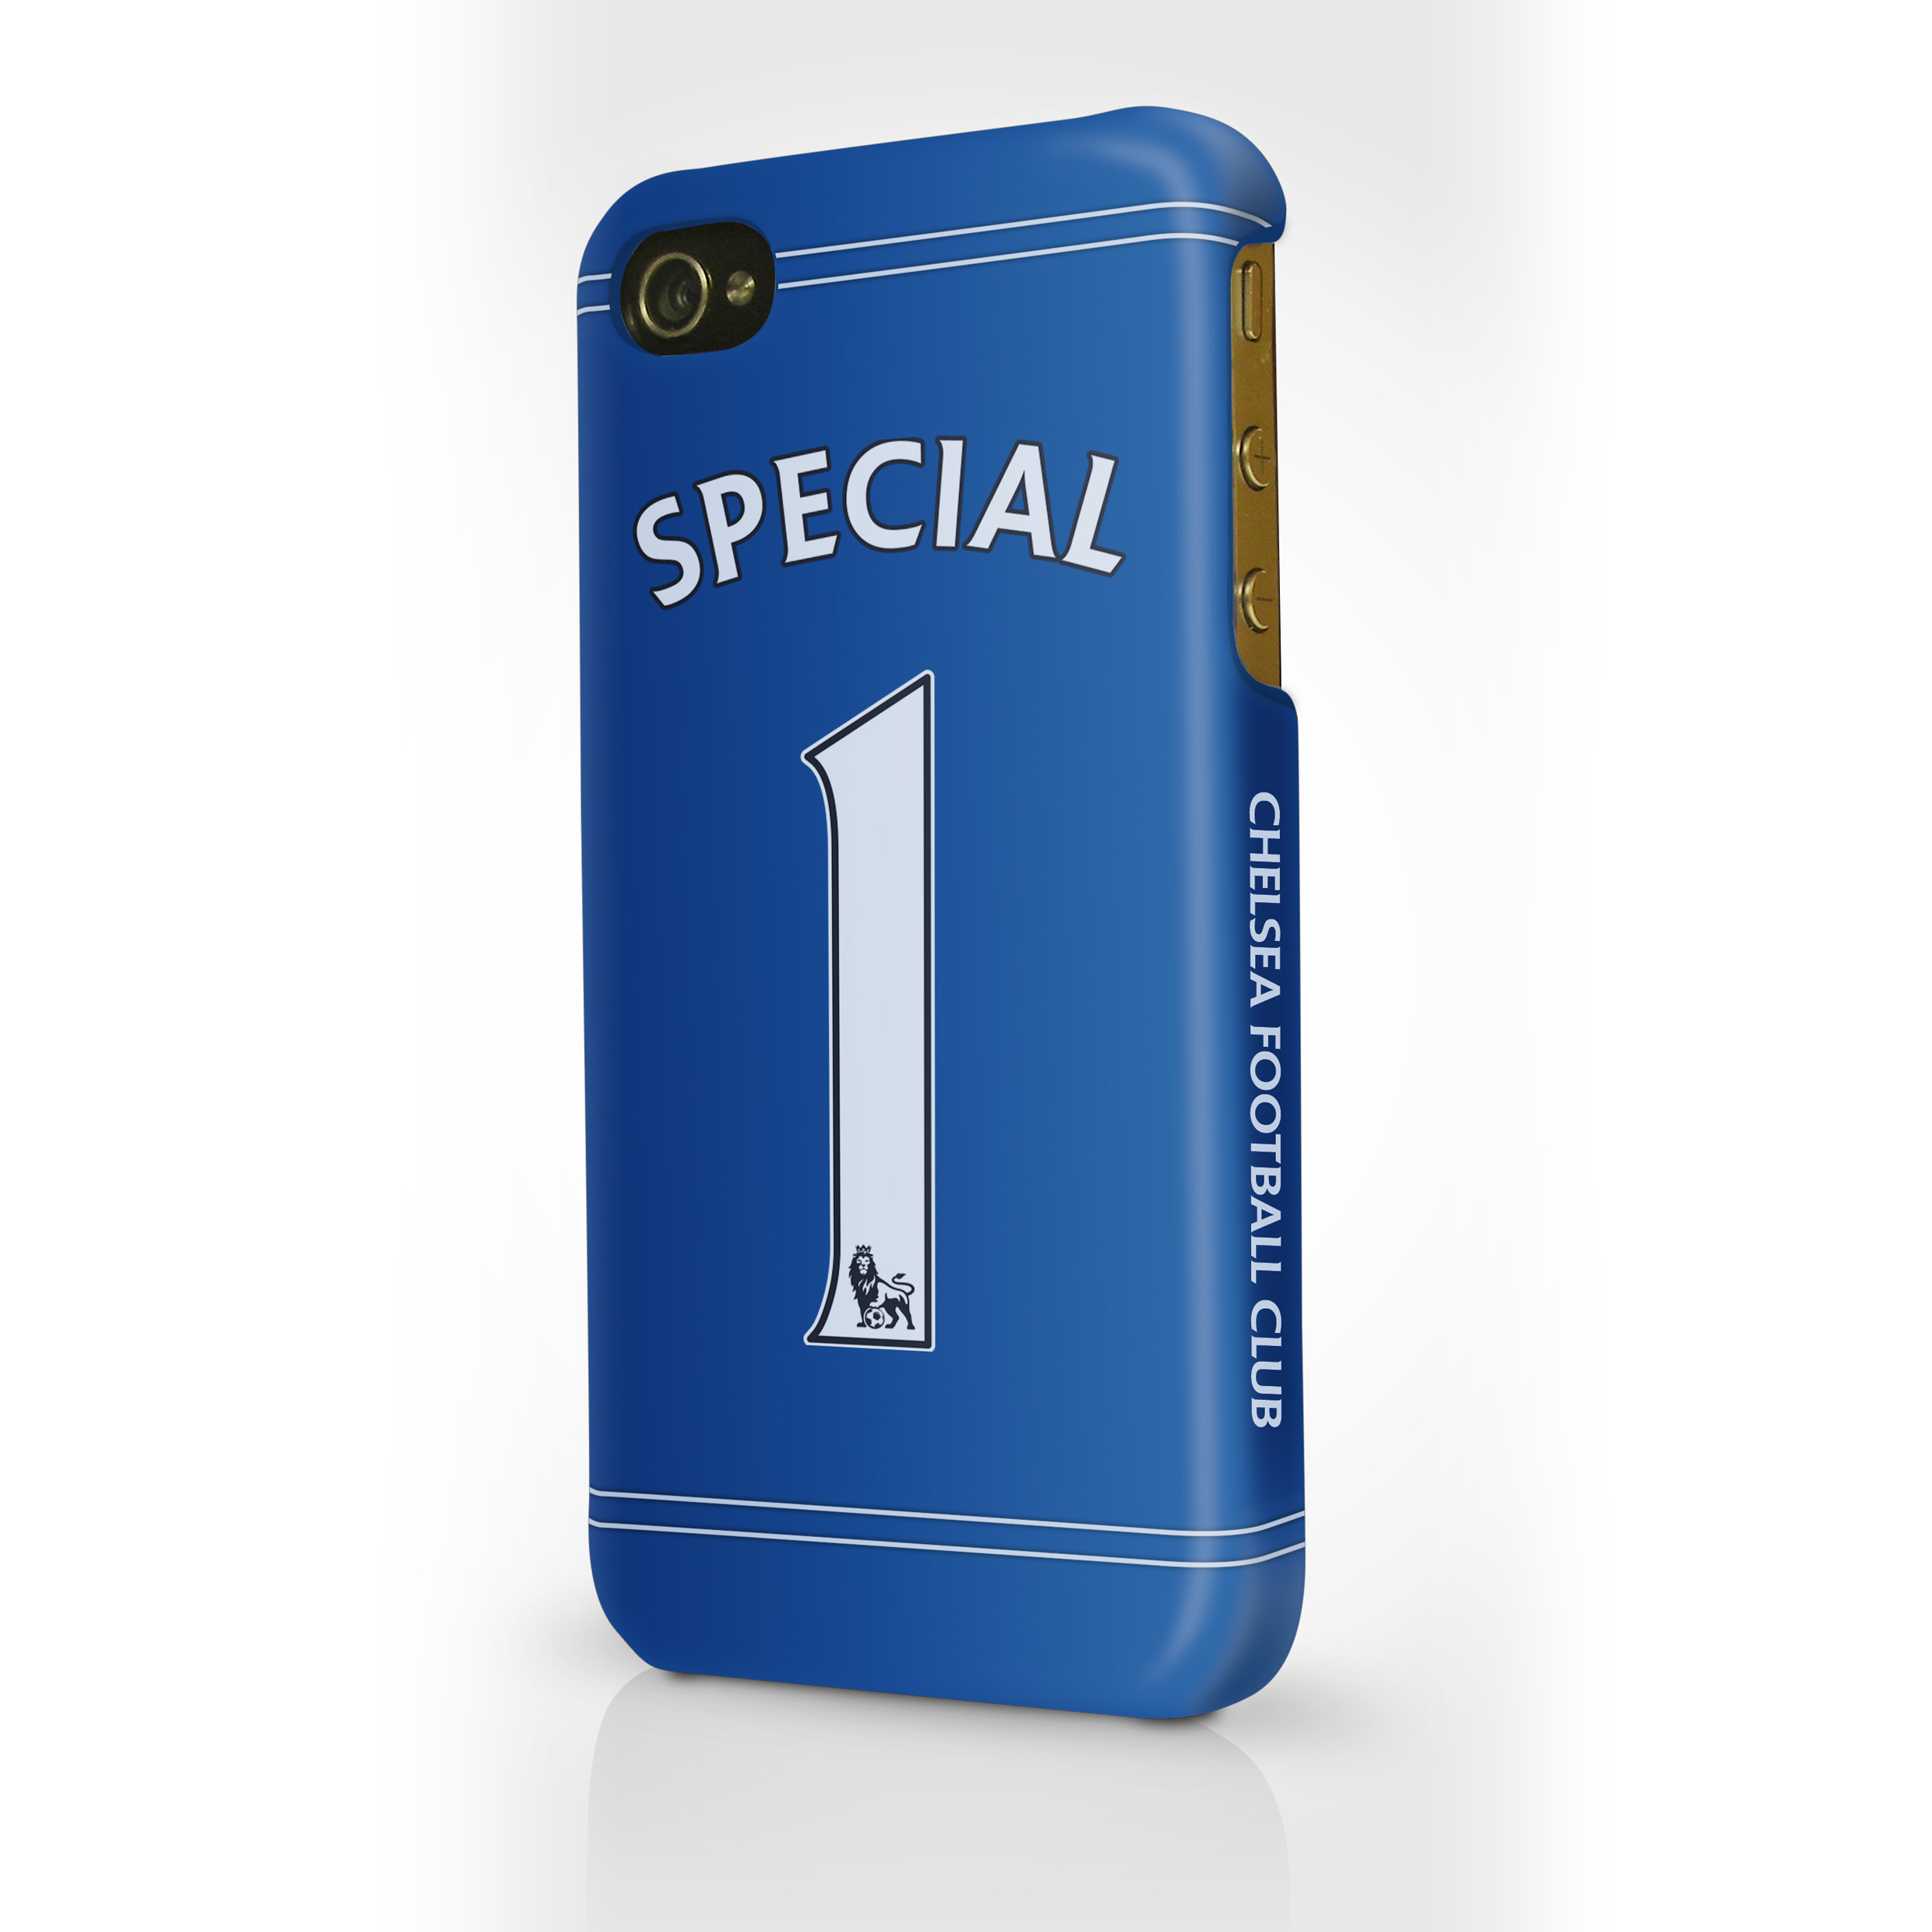 Chelsea Special 1 iPhone 5 Hard Case